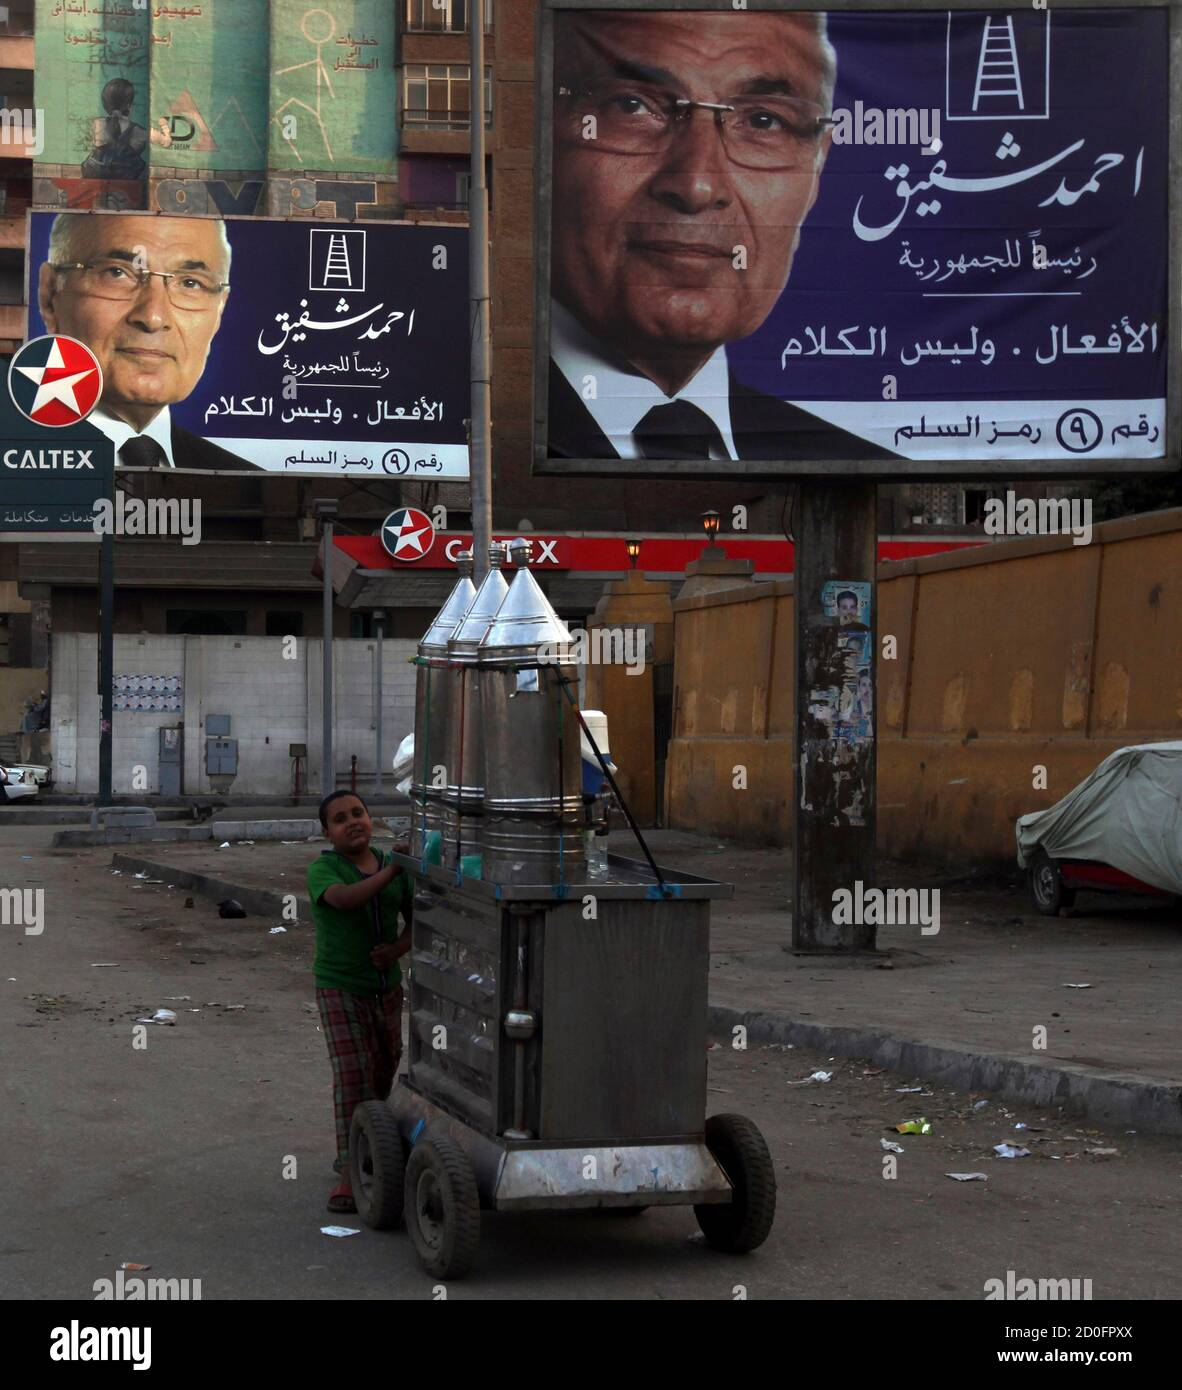 A street vendor walks under campaign election billboards of presidential candidate and former prime minister Ahmed Shafiq in Cairo May 7, 2012. Voting starts on May 23-24 in the election to choose a new president after Hosni Mubarak was turfed out of office last year. REUTERS/Amr Abdallah Dalsh  (EGYPT - Tags: POLITICS ELECTIONS) Stock Photo